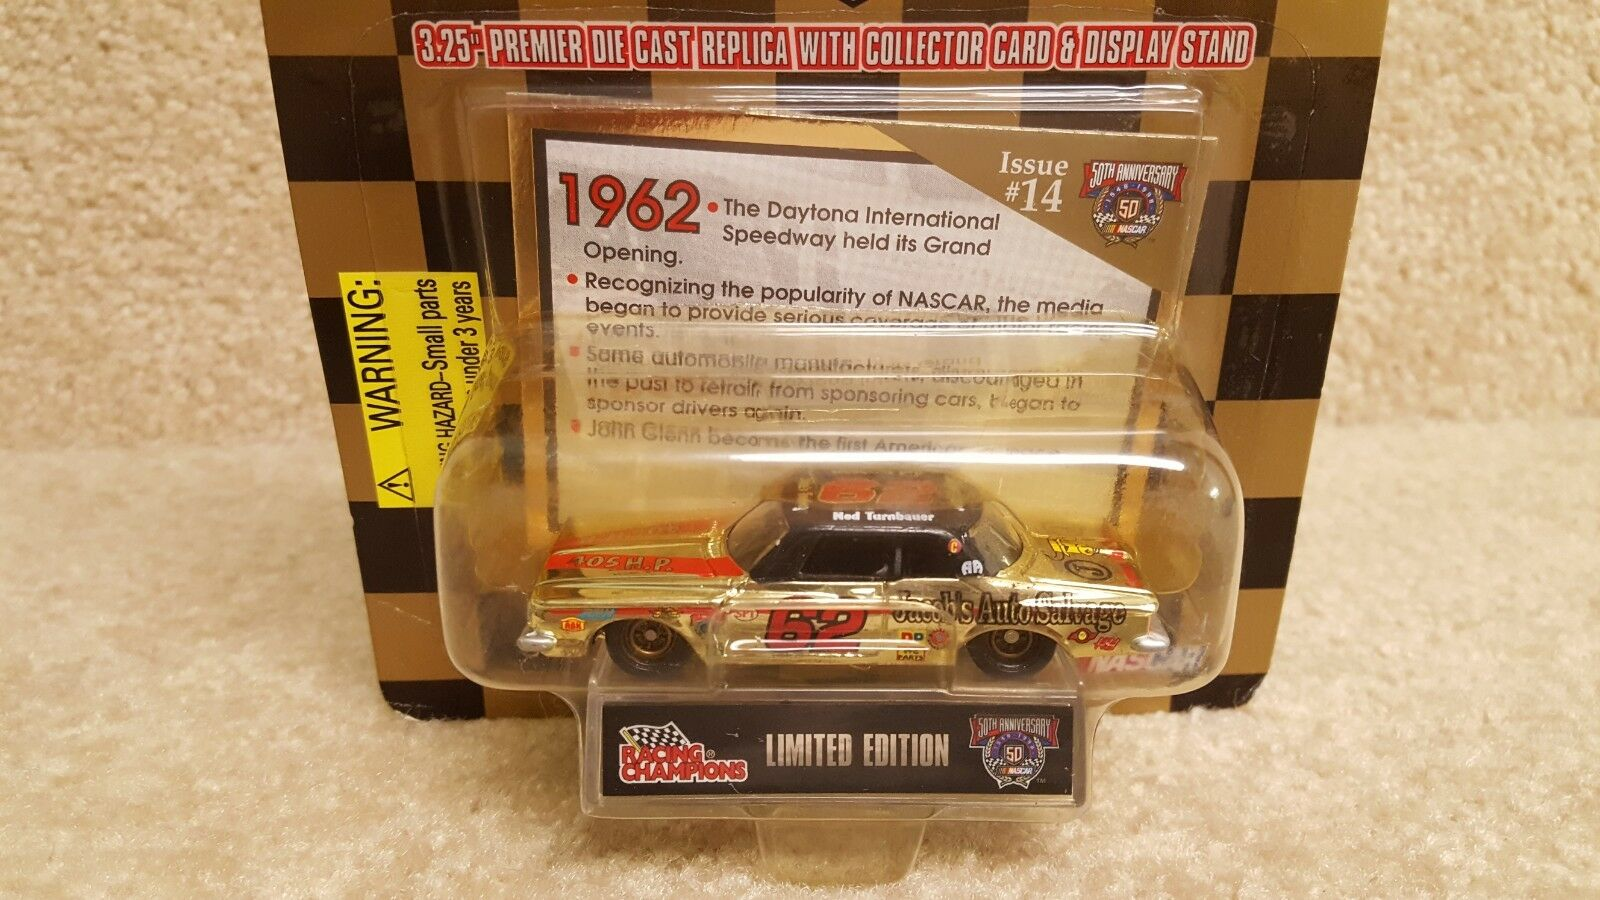 New 1998 Racing Champions 1 64 NASCAR gold Ned Turnbauer 1962 Plymouth